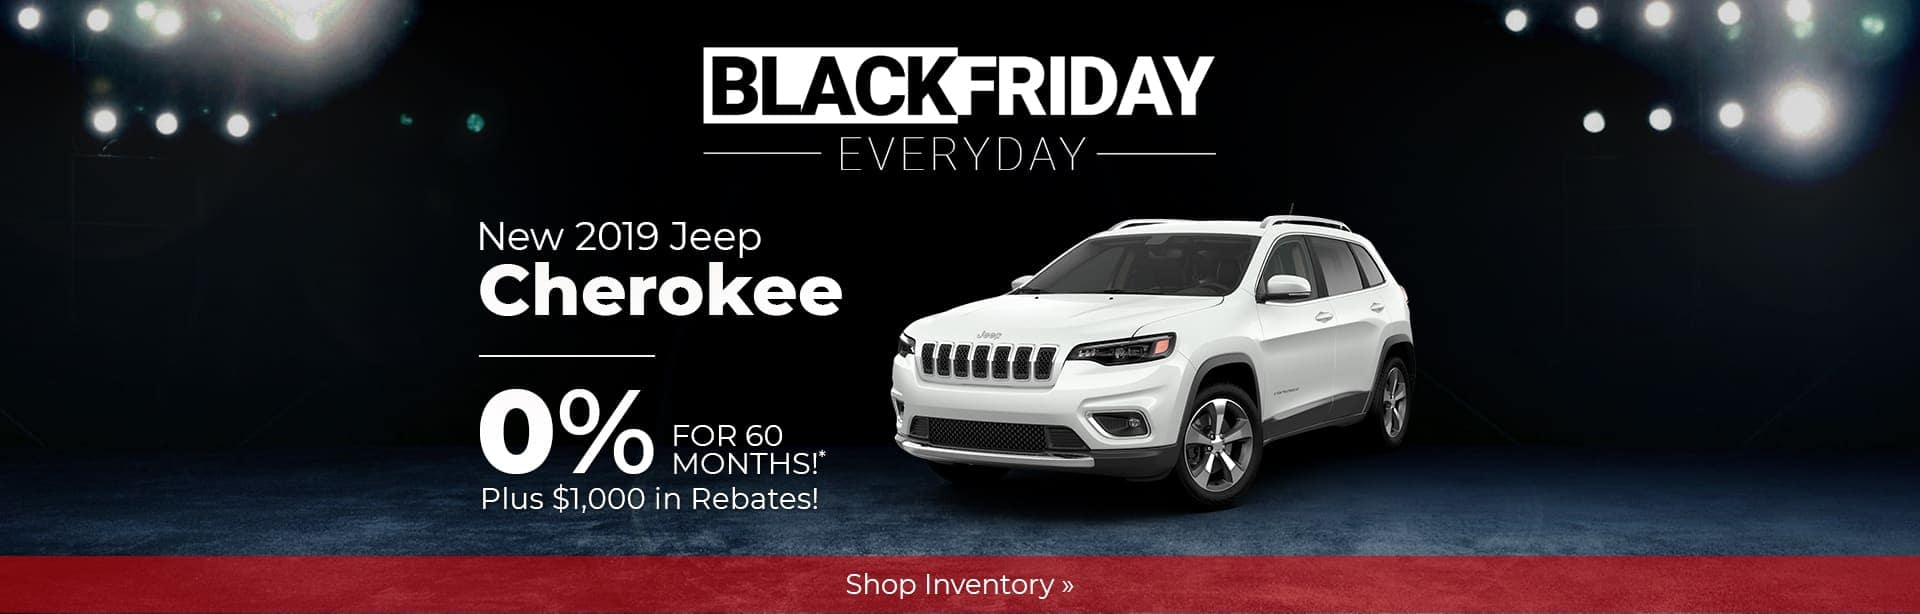 2019 Jeep Cherokee Black Friday Deal Indianapolis